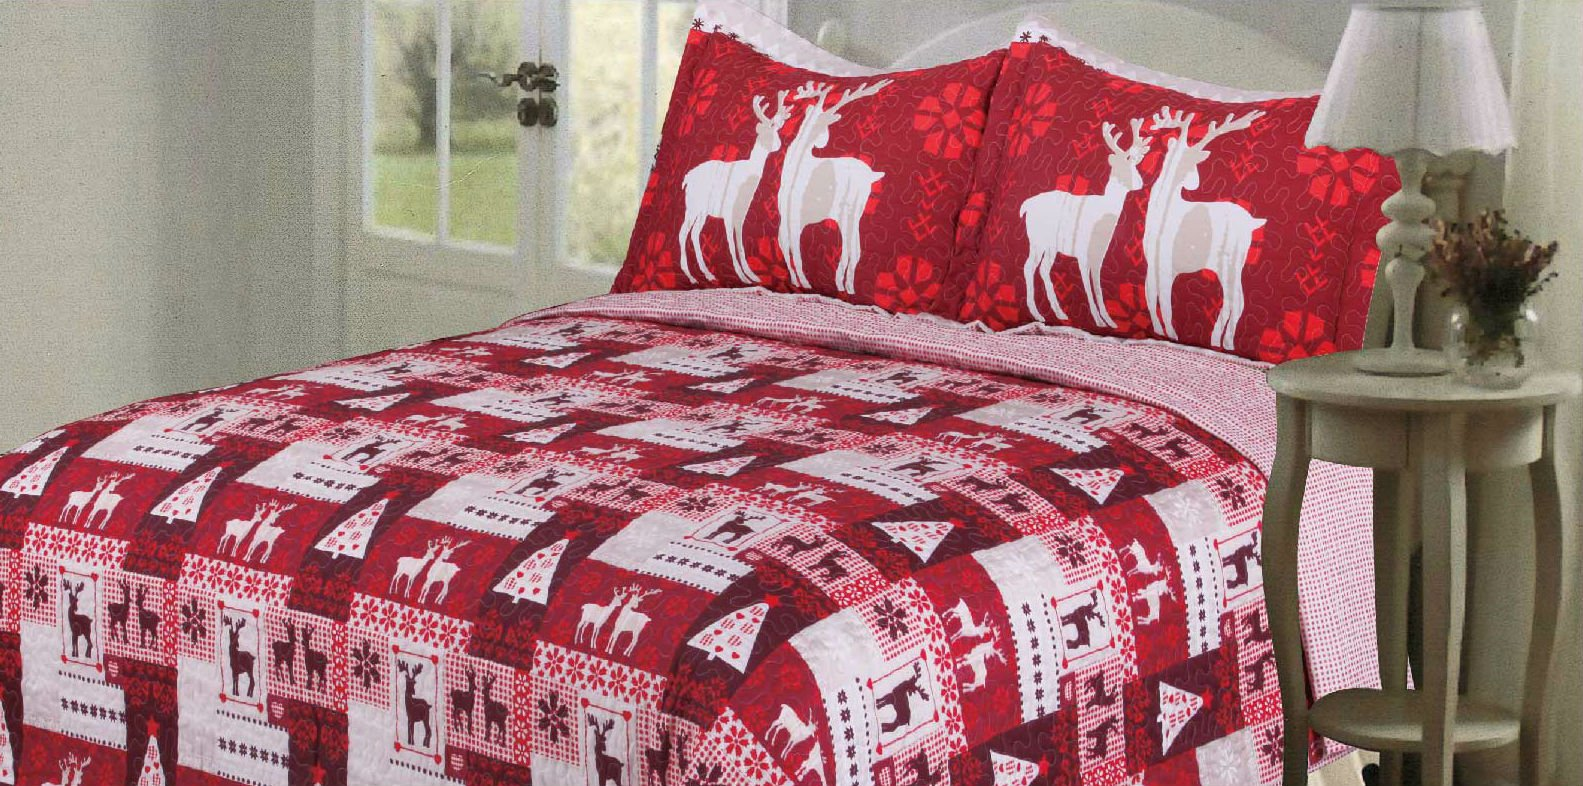 Christmas Quilt Bedspreads 3 Piece Set - Bedspread Coverlet and Holiday Pillow Shams - Premium Quality Microfiber Red and White Bed Covers with Reindeer and Christmas Tree Design by DELUXE HOME